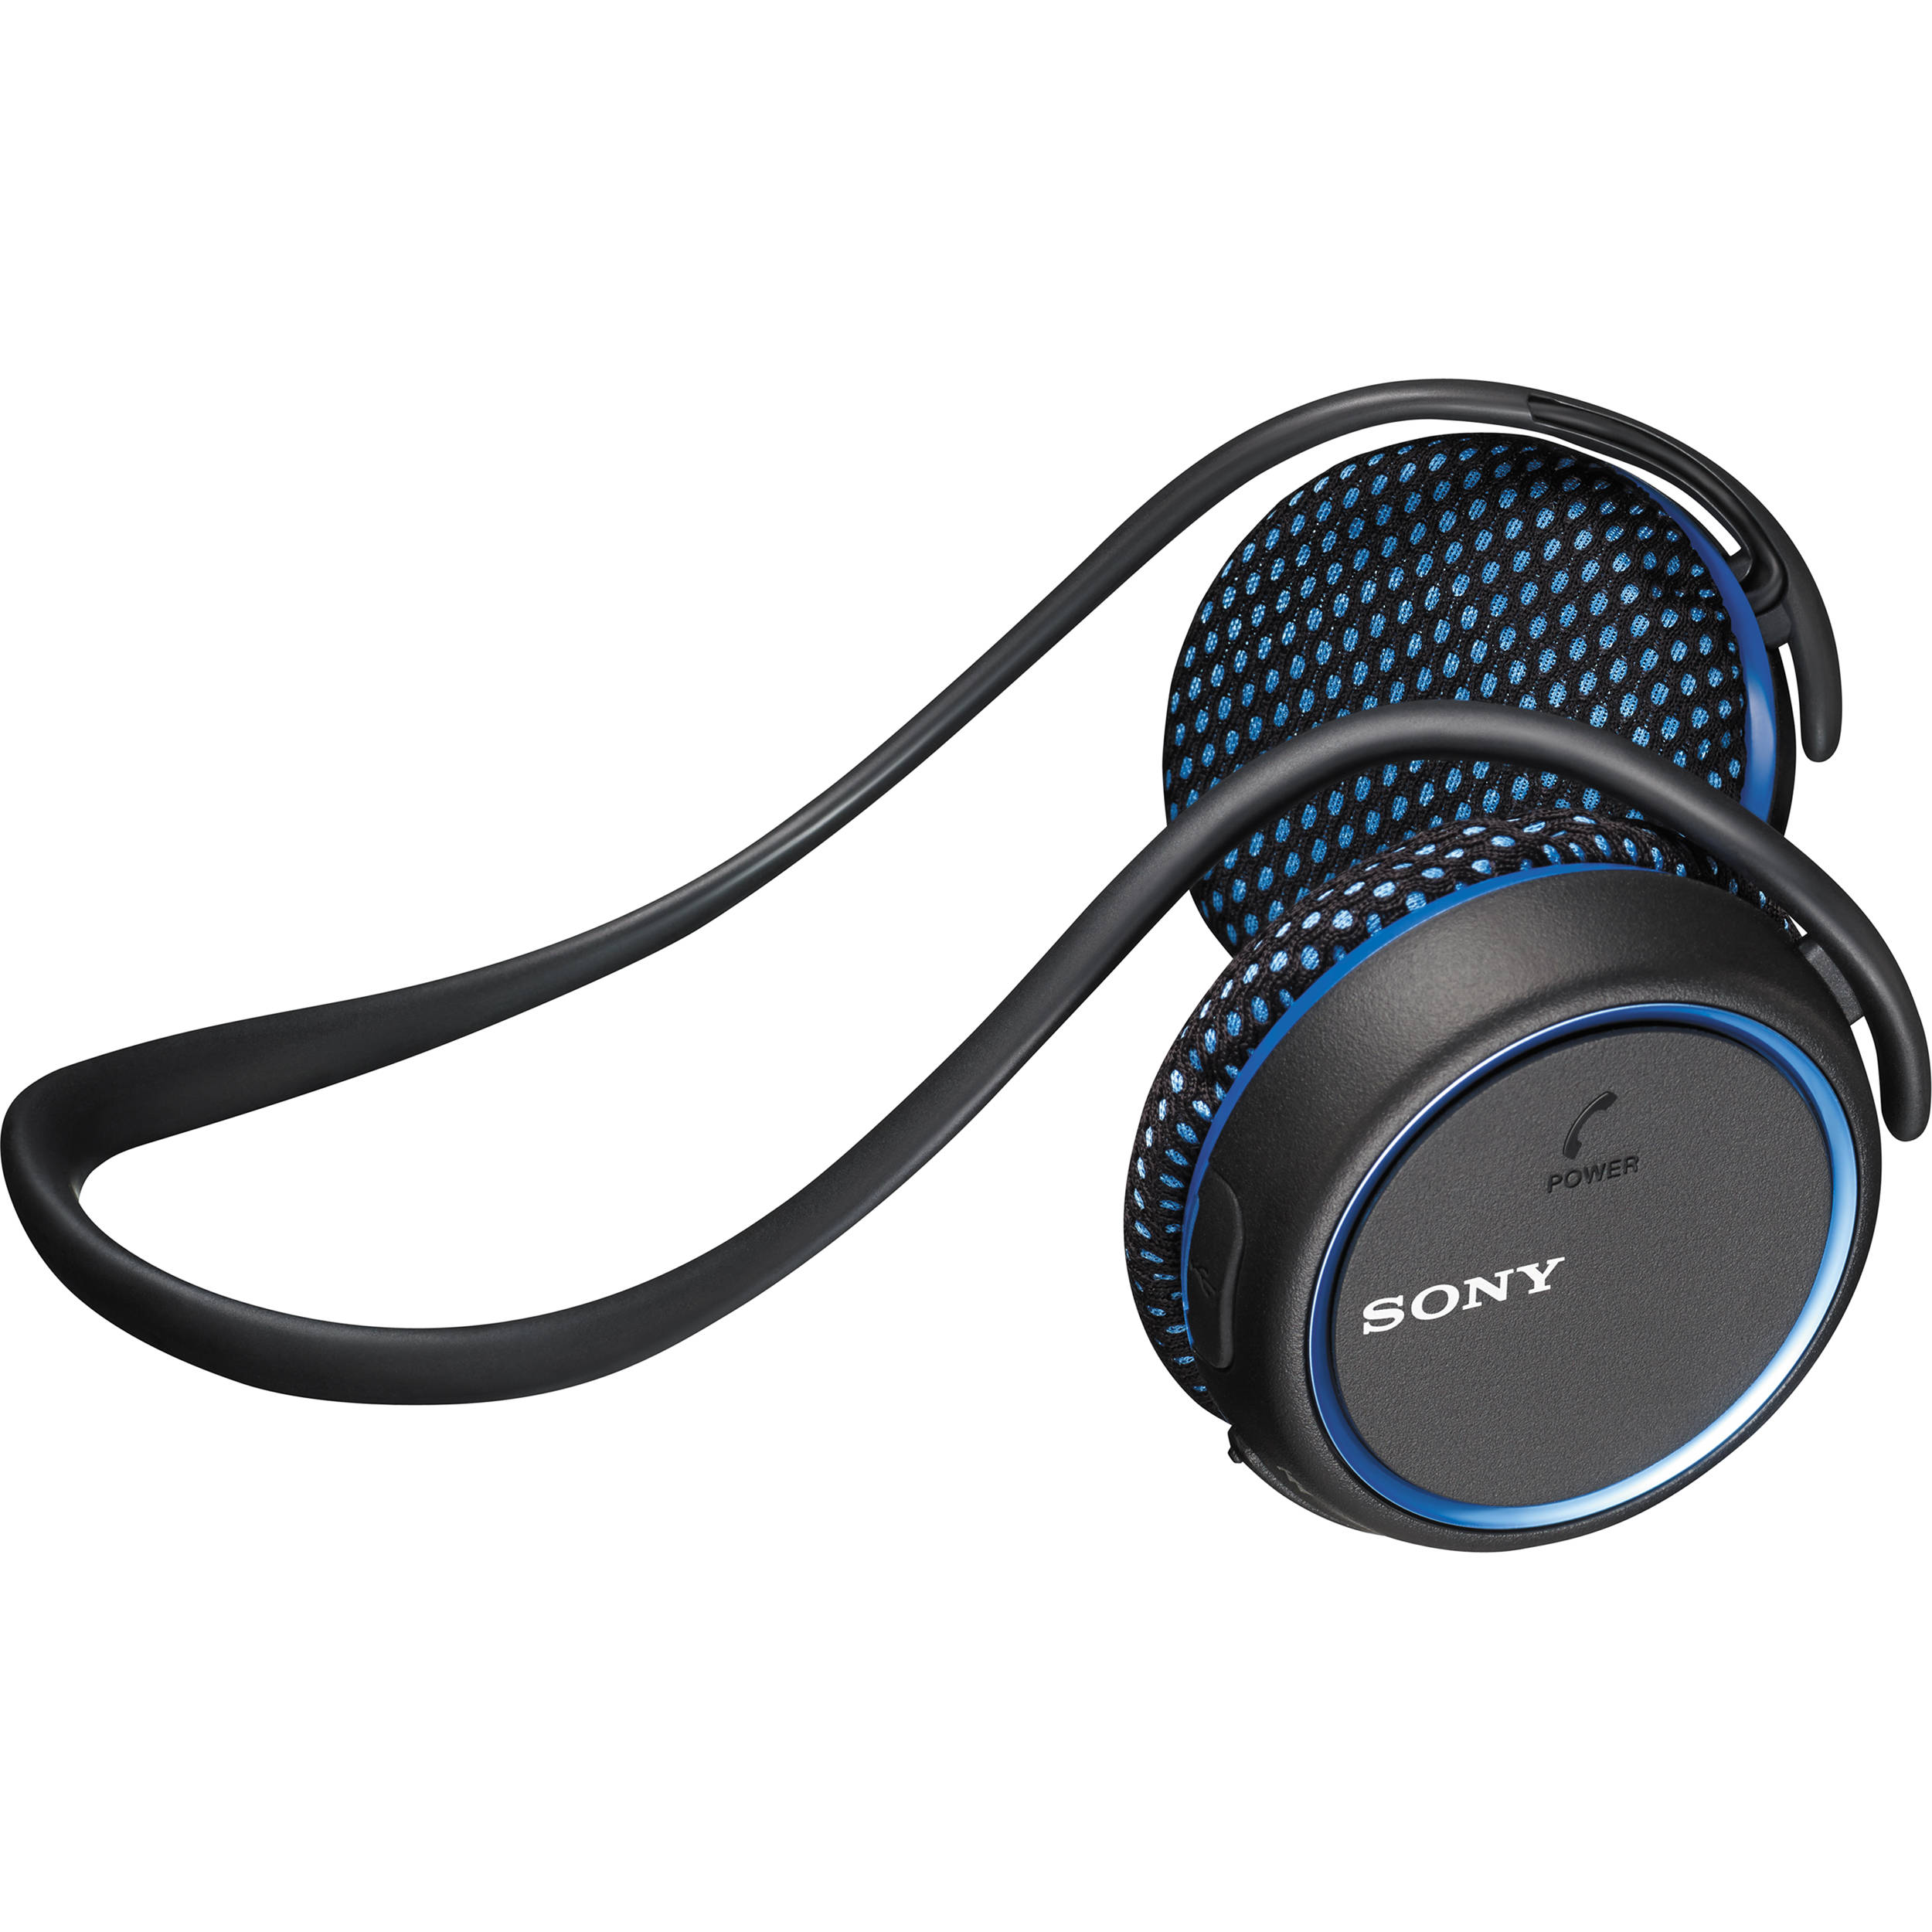 Bluetooth Earpiece For Sports Bluetooth Keyboard Android Russian Bluetooth 5 Development Board Bluetooth Adapter For Pc Ps3 Controller: Sony MDR-AS700BT Bluetooth Wireless Sports Headset